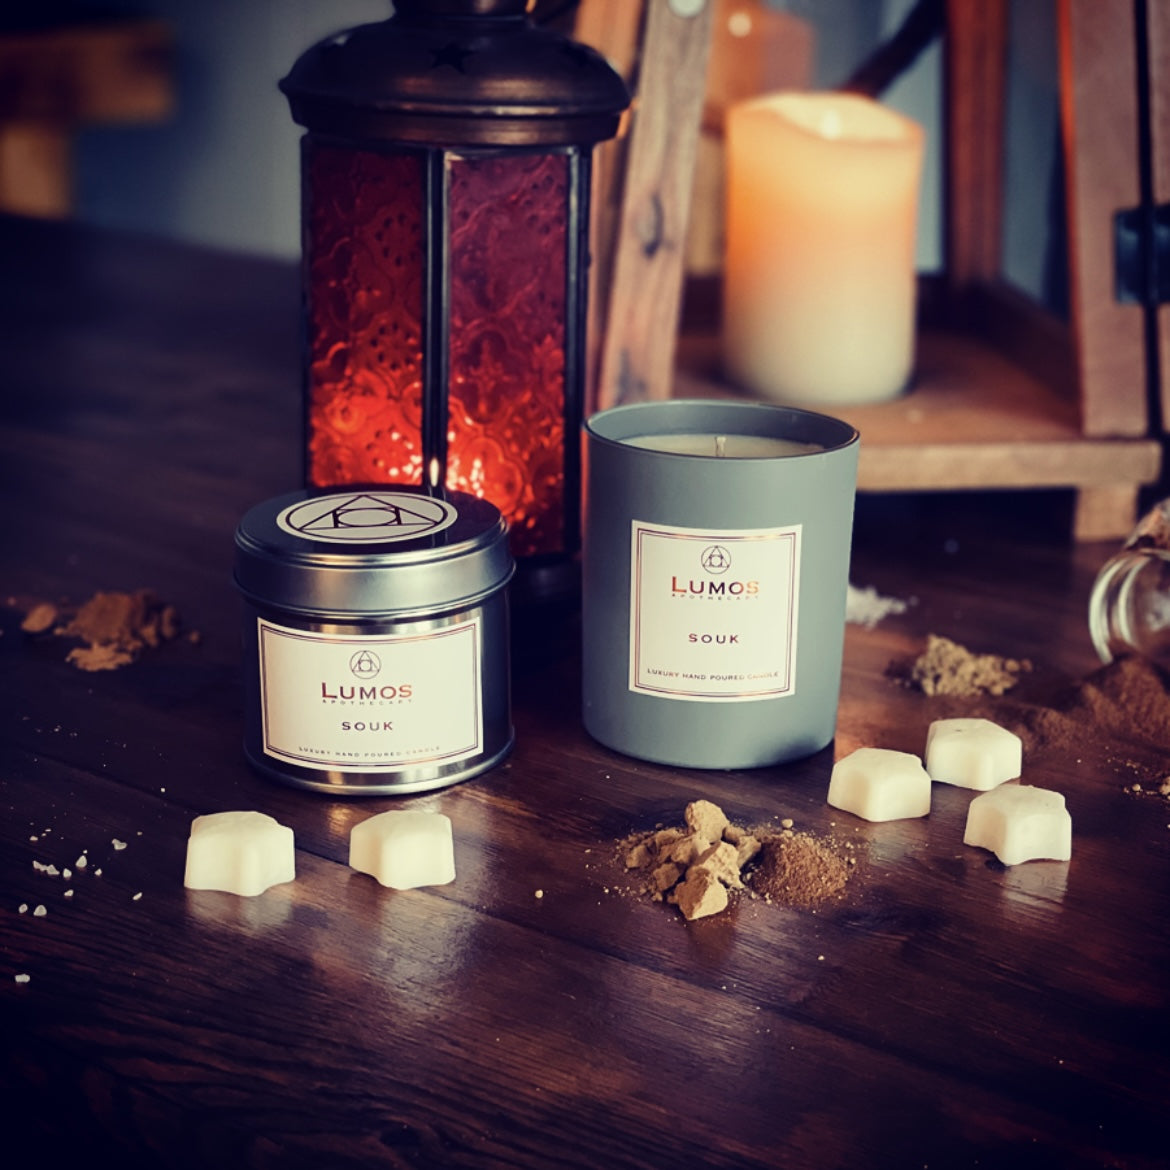 Persian Bazaar scented soy wax candle in a grey jar and silver tin surrounded by white wax melts on a wooden surface. A red lantern and pillar candle in the background.